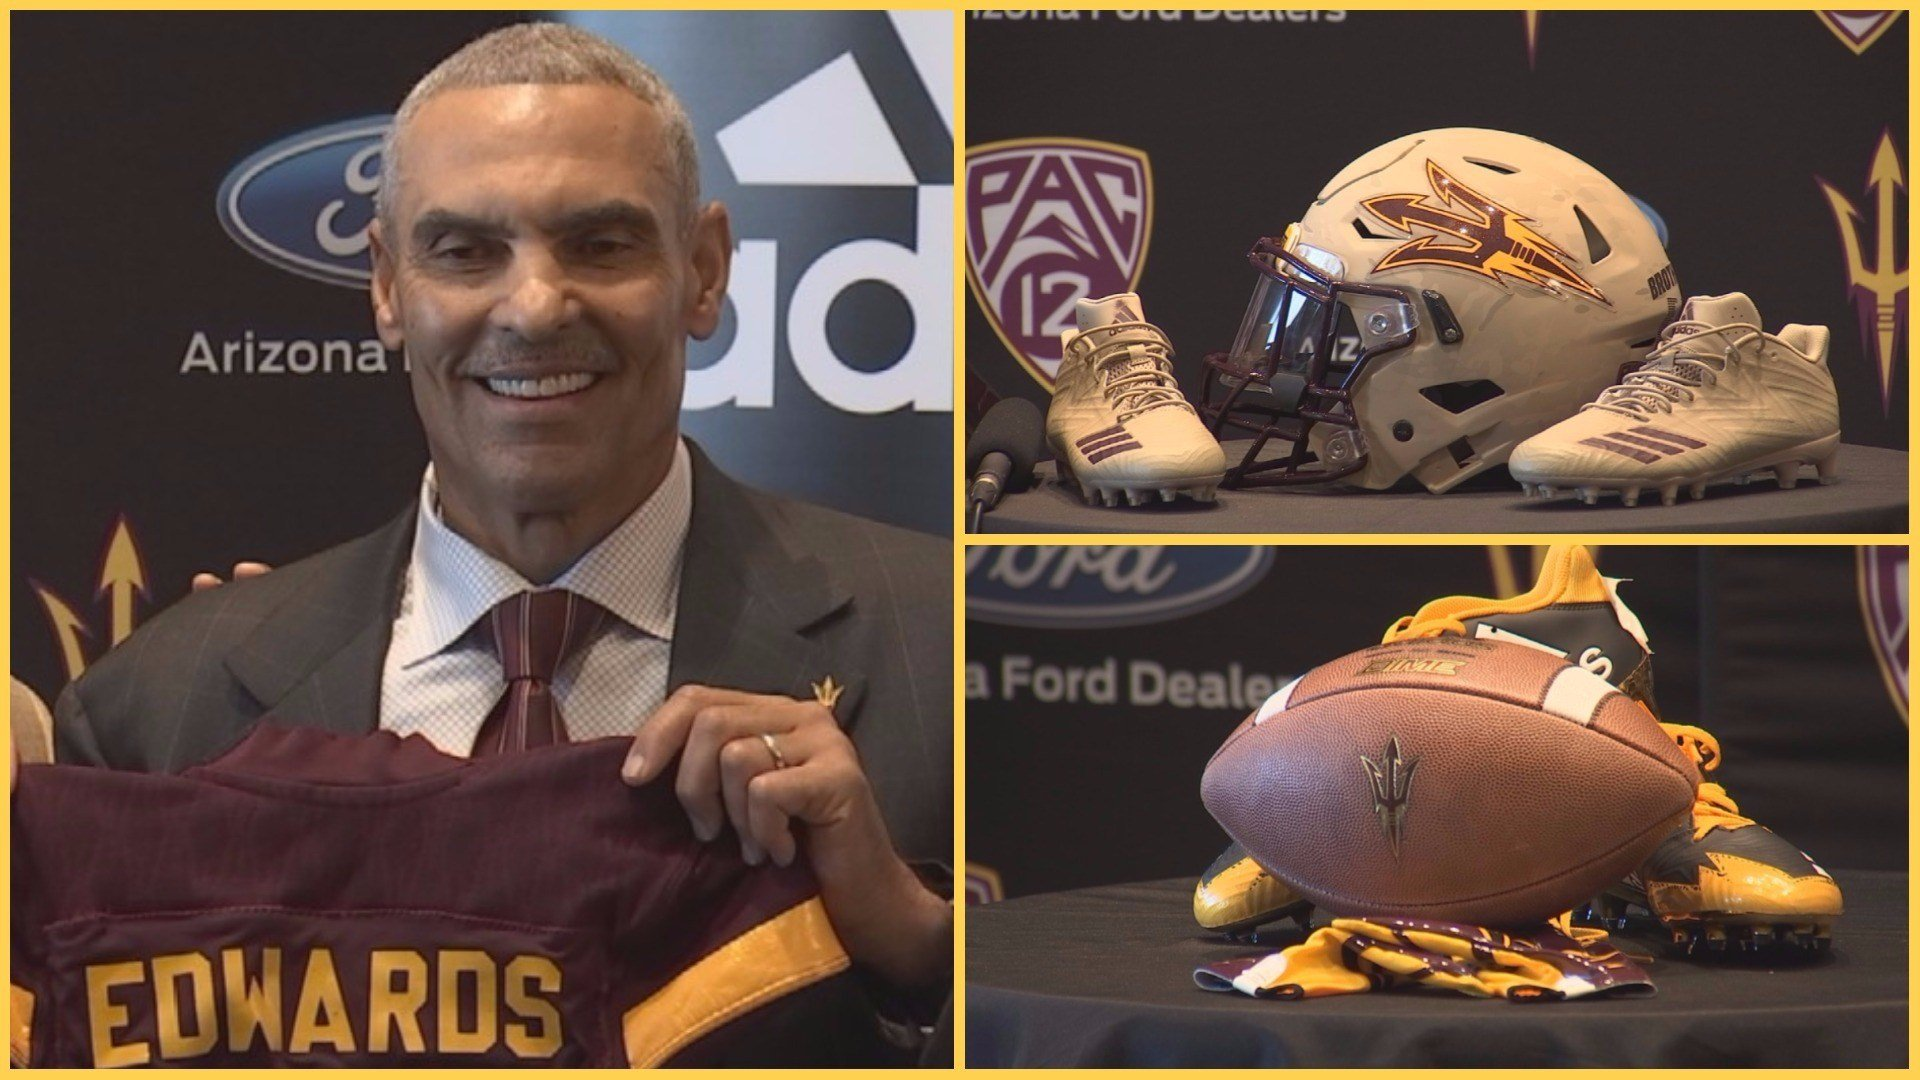 Herm Edwards may not know Arizona State's mascot is a Sun Devil